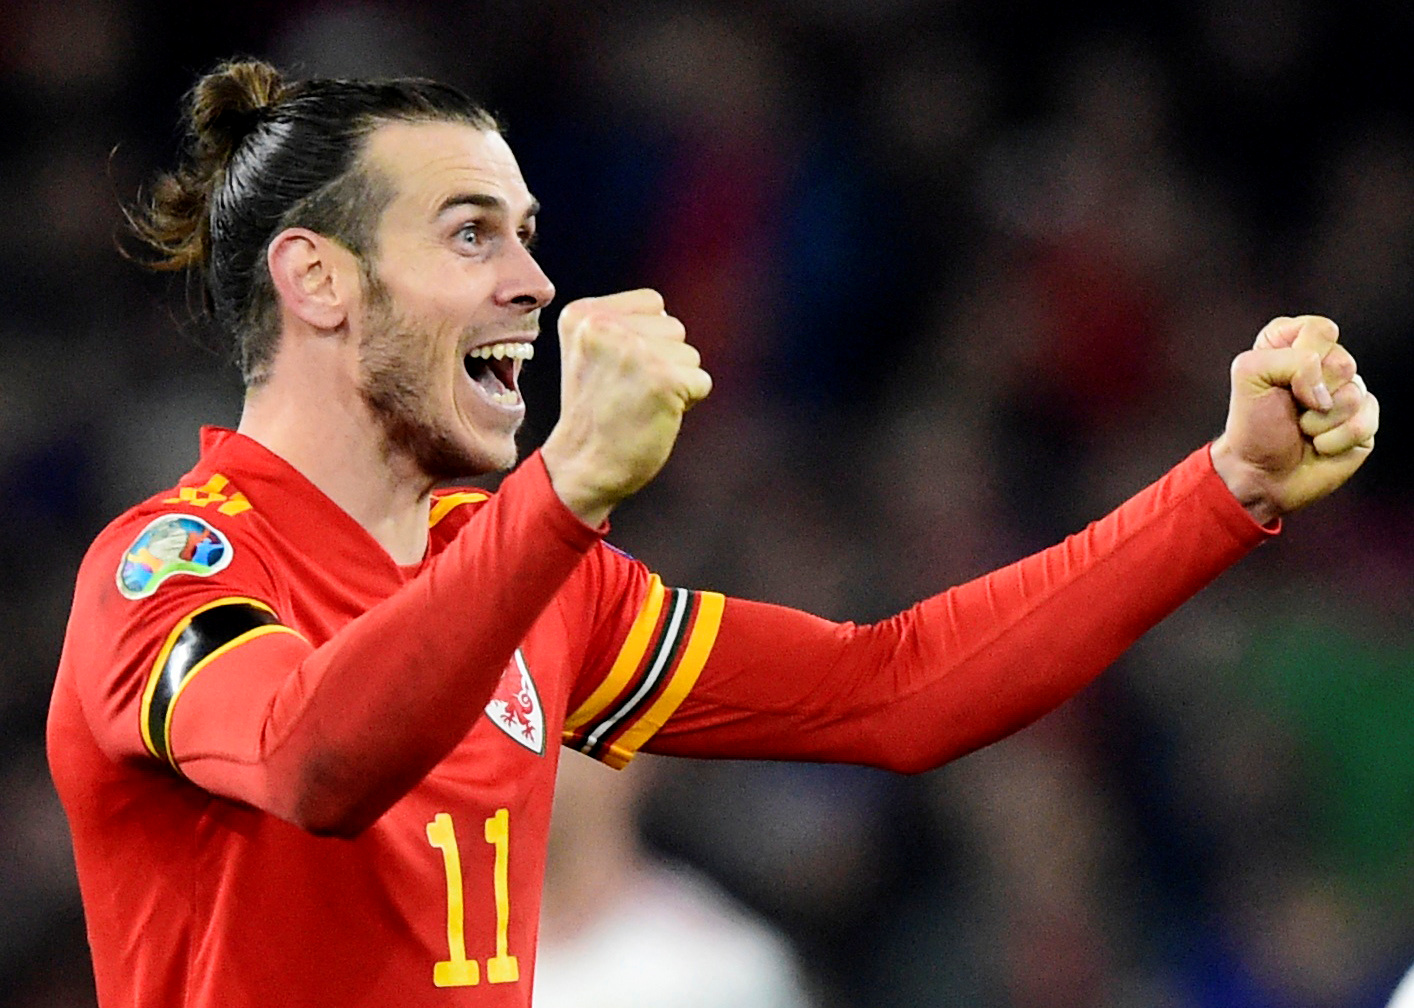 Bale's flag celebration was silly: Berbatov